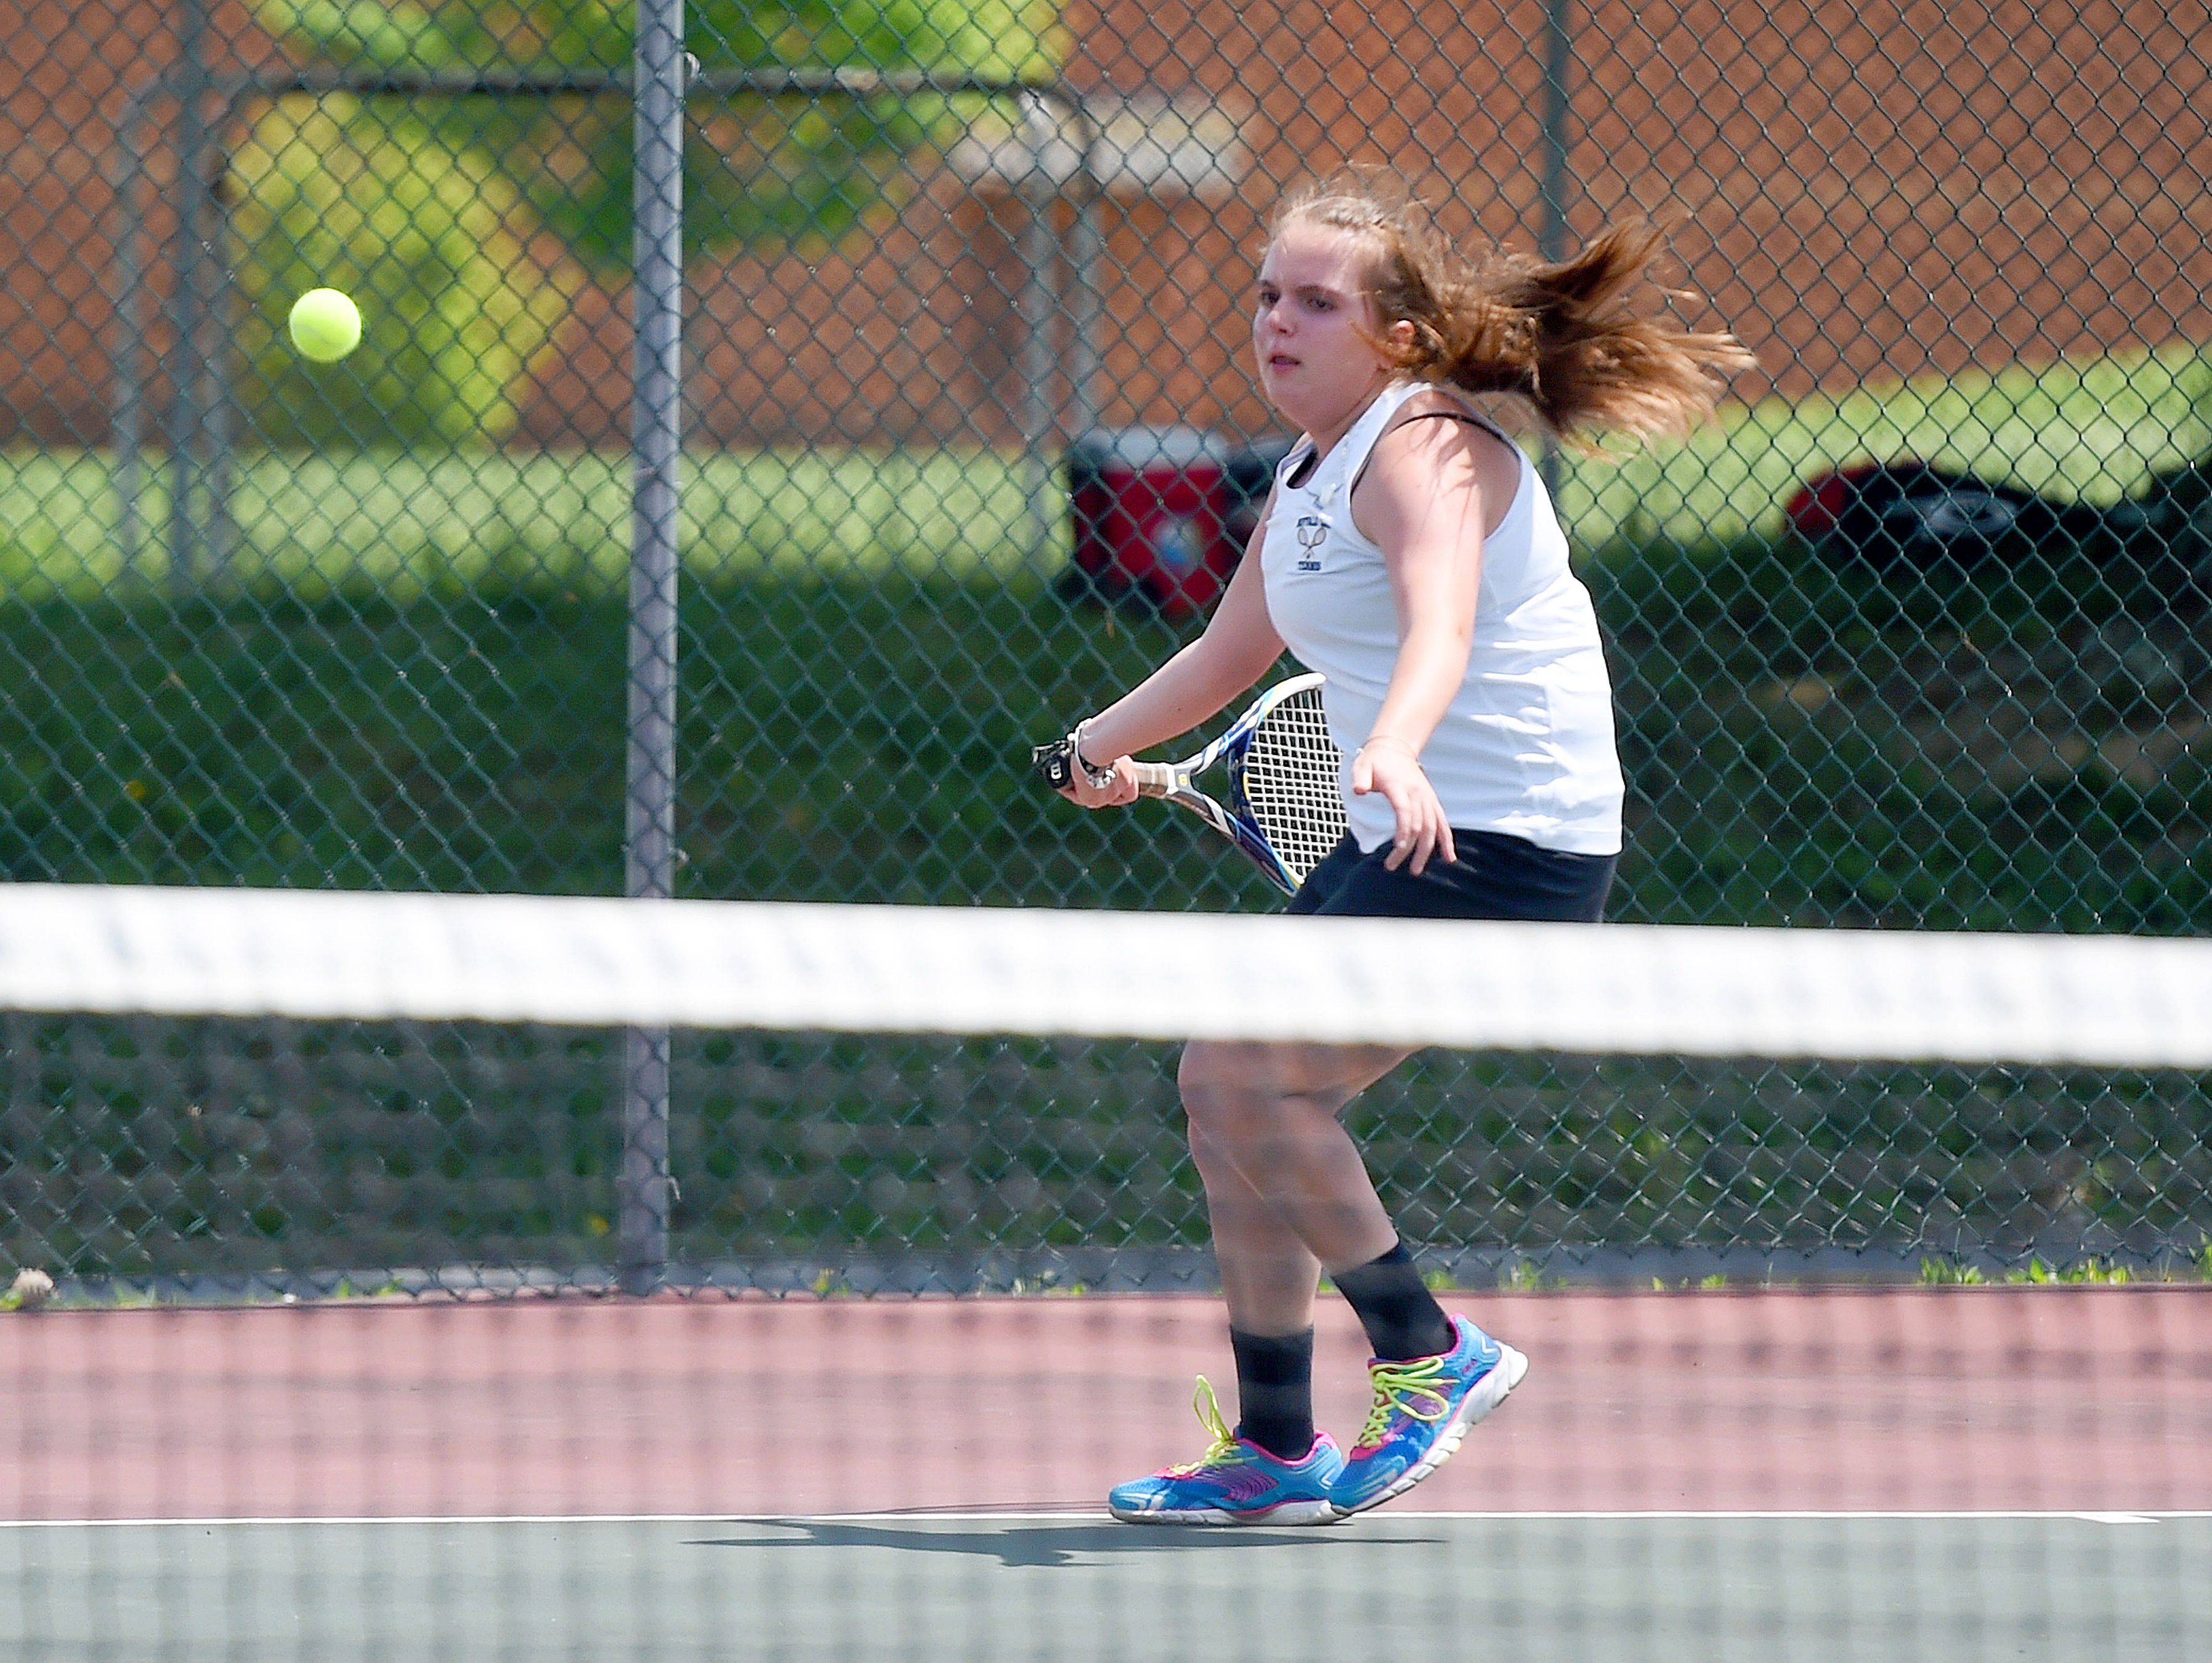 Buffalo Gap's Renae Coon returns the ball in a match against East Rockingham's Chloe Shuff during the Conference 36 tennis tournament in Fishersville on Thursday, May 13, 2016.